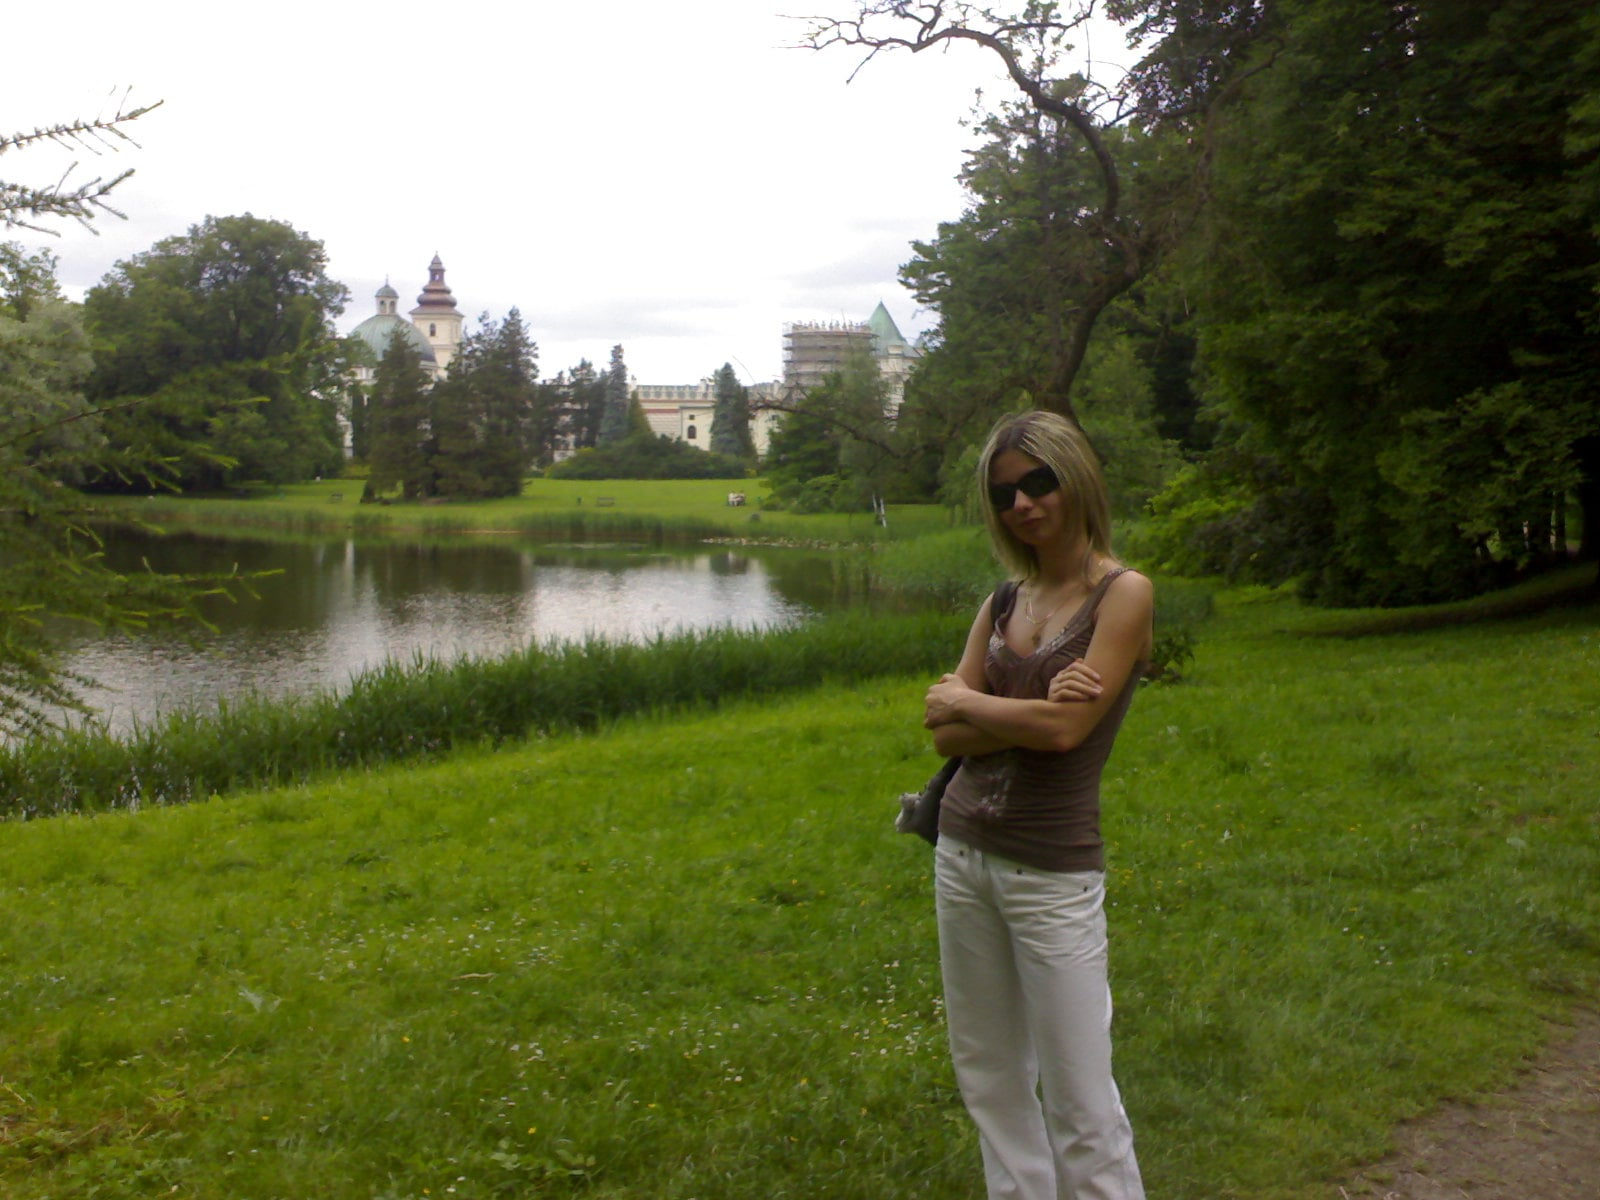 In the background the lake and the old castle in Krasiczyn :)